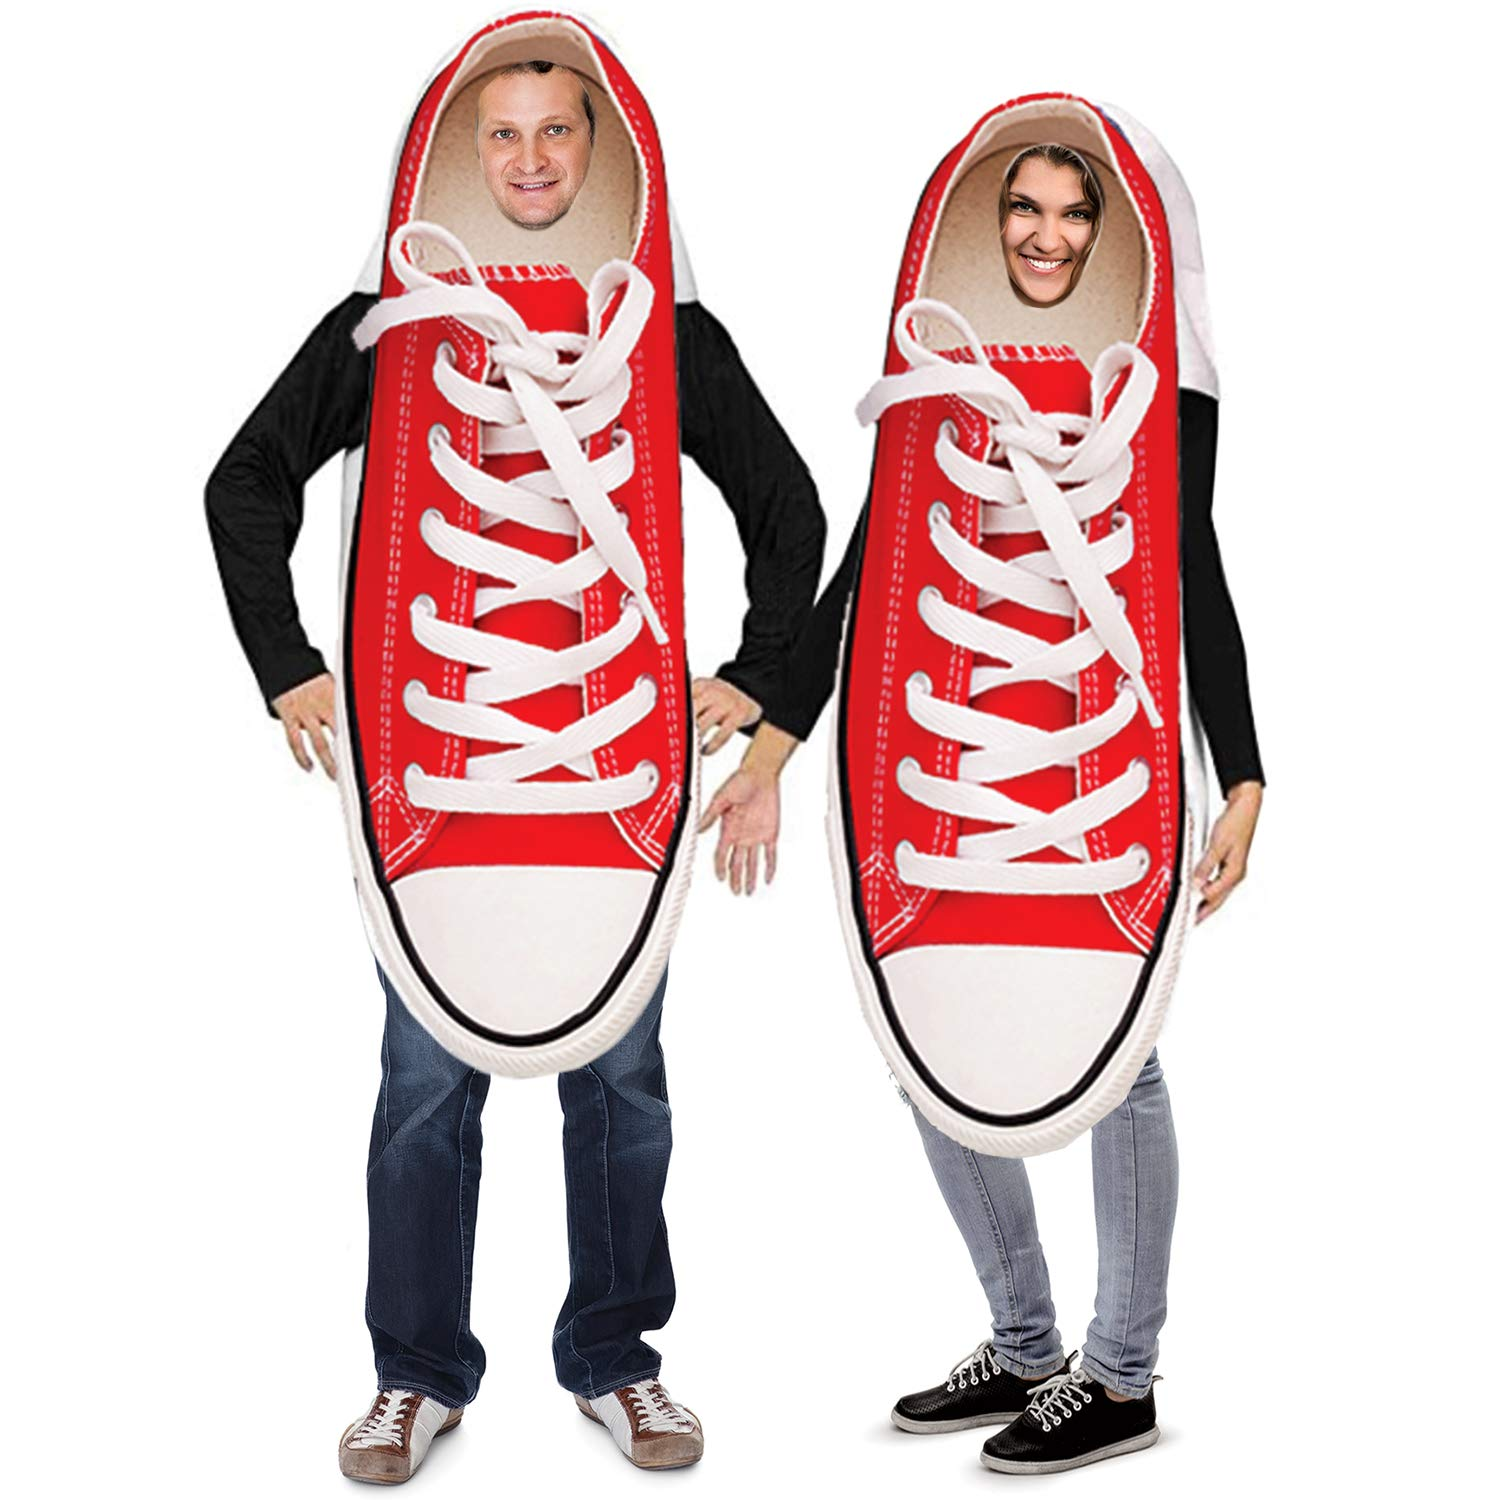 Tigerdoe Couples Costumes \u2013 Novelty Sneaker Costume \u2013 Funny Adult Halloween  Costumes \u2013 2 Pc